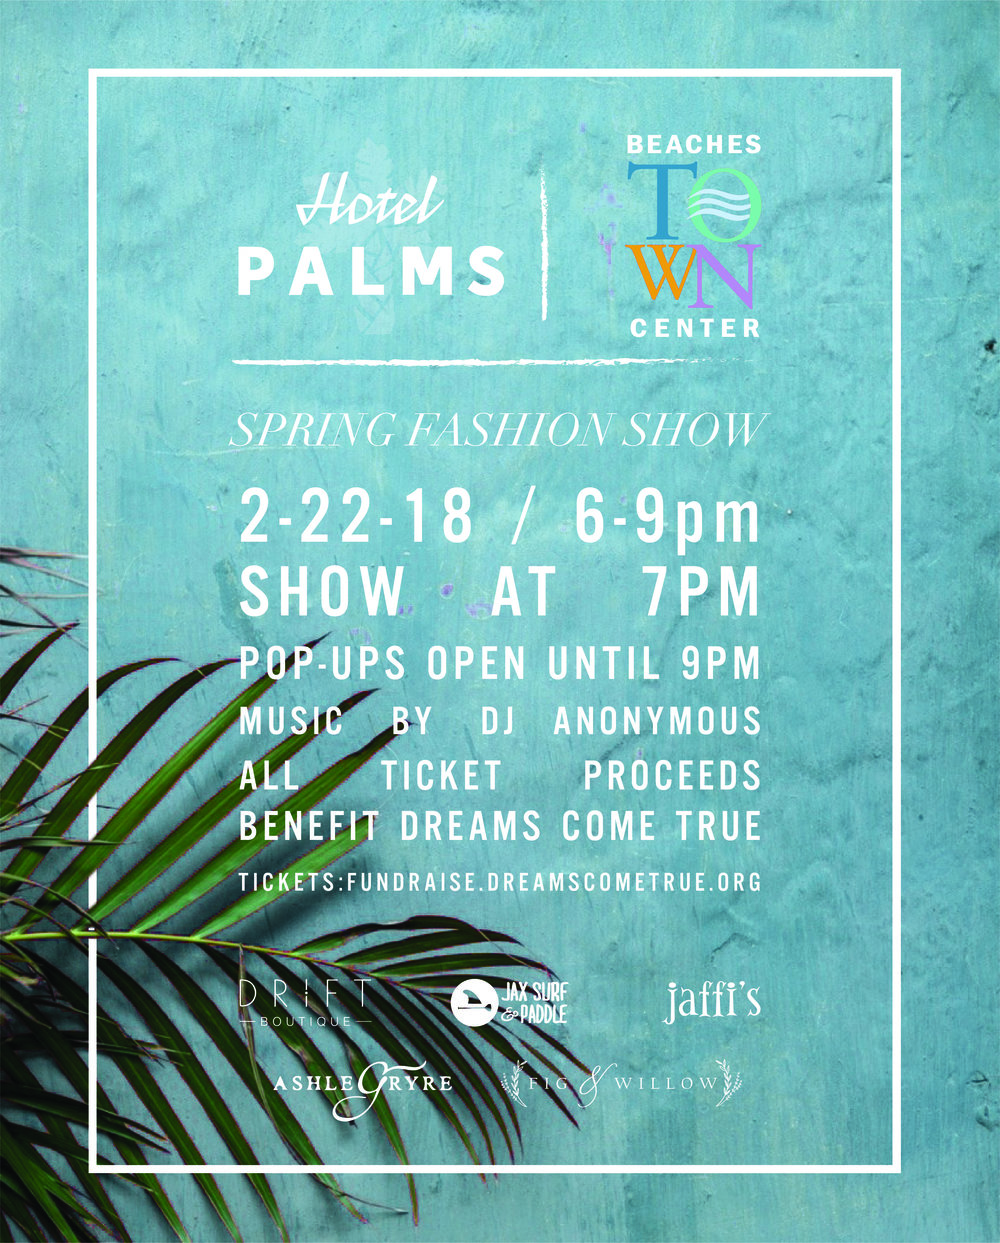 Buy your tickets now to attend the show of the season in Jax. You'll see me and some of my blogging besties there supporting Dreams Come True Jacksonville. Link to purchase your tickets is in the image and below.